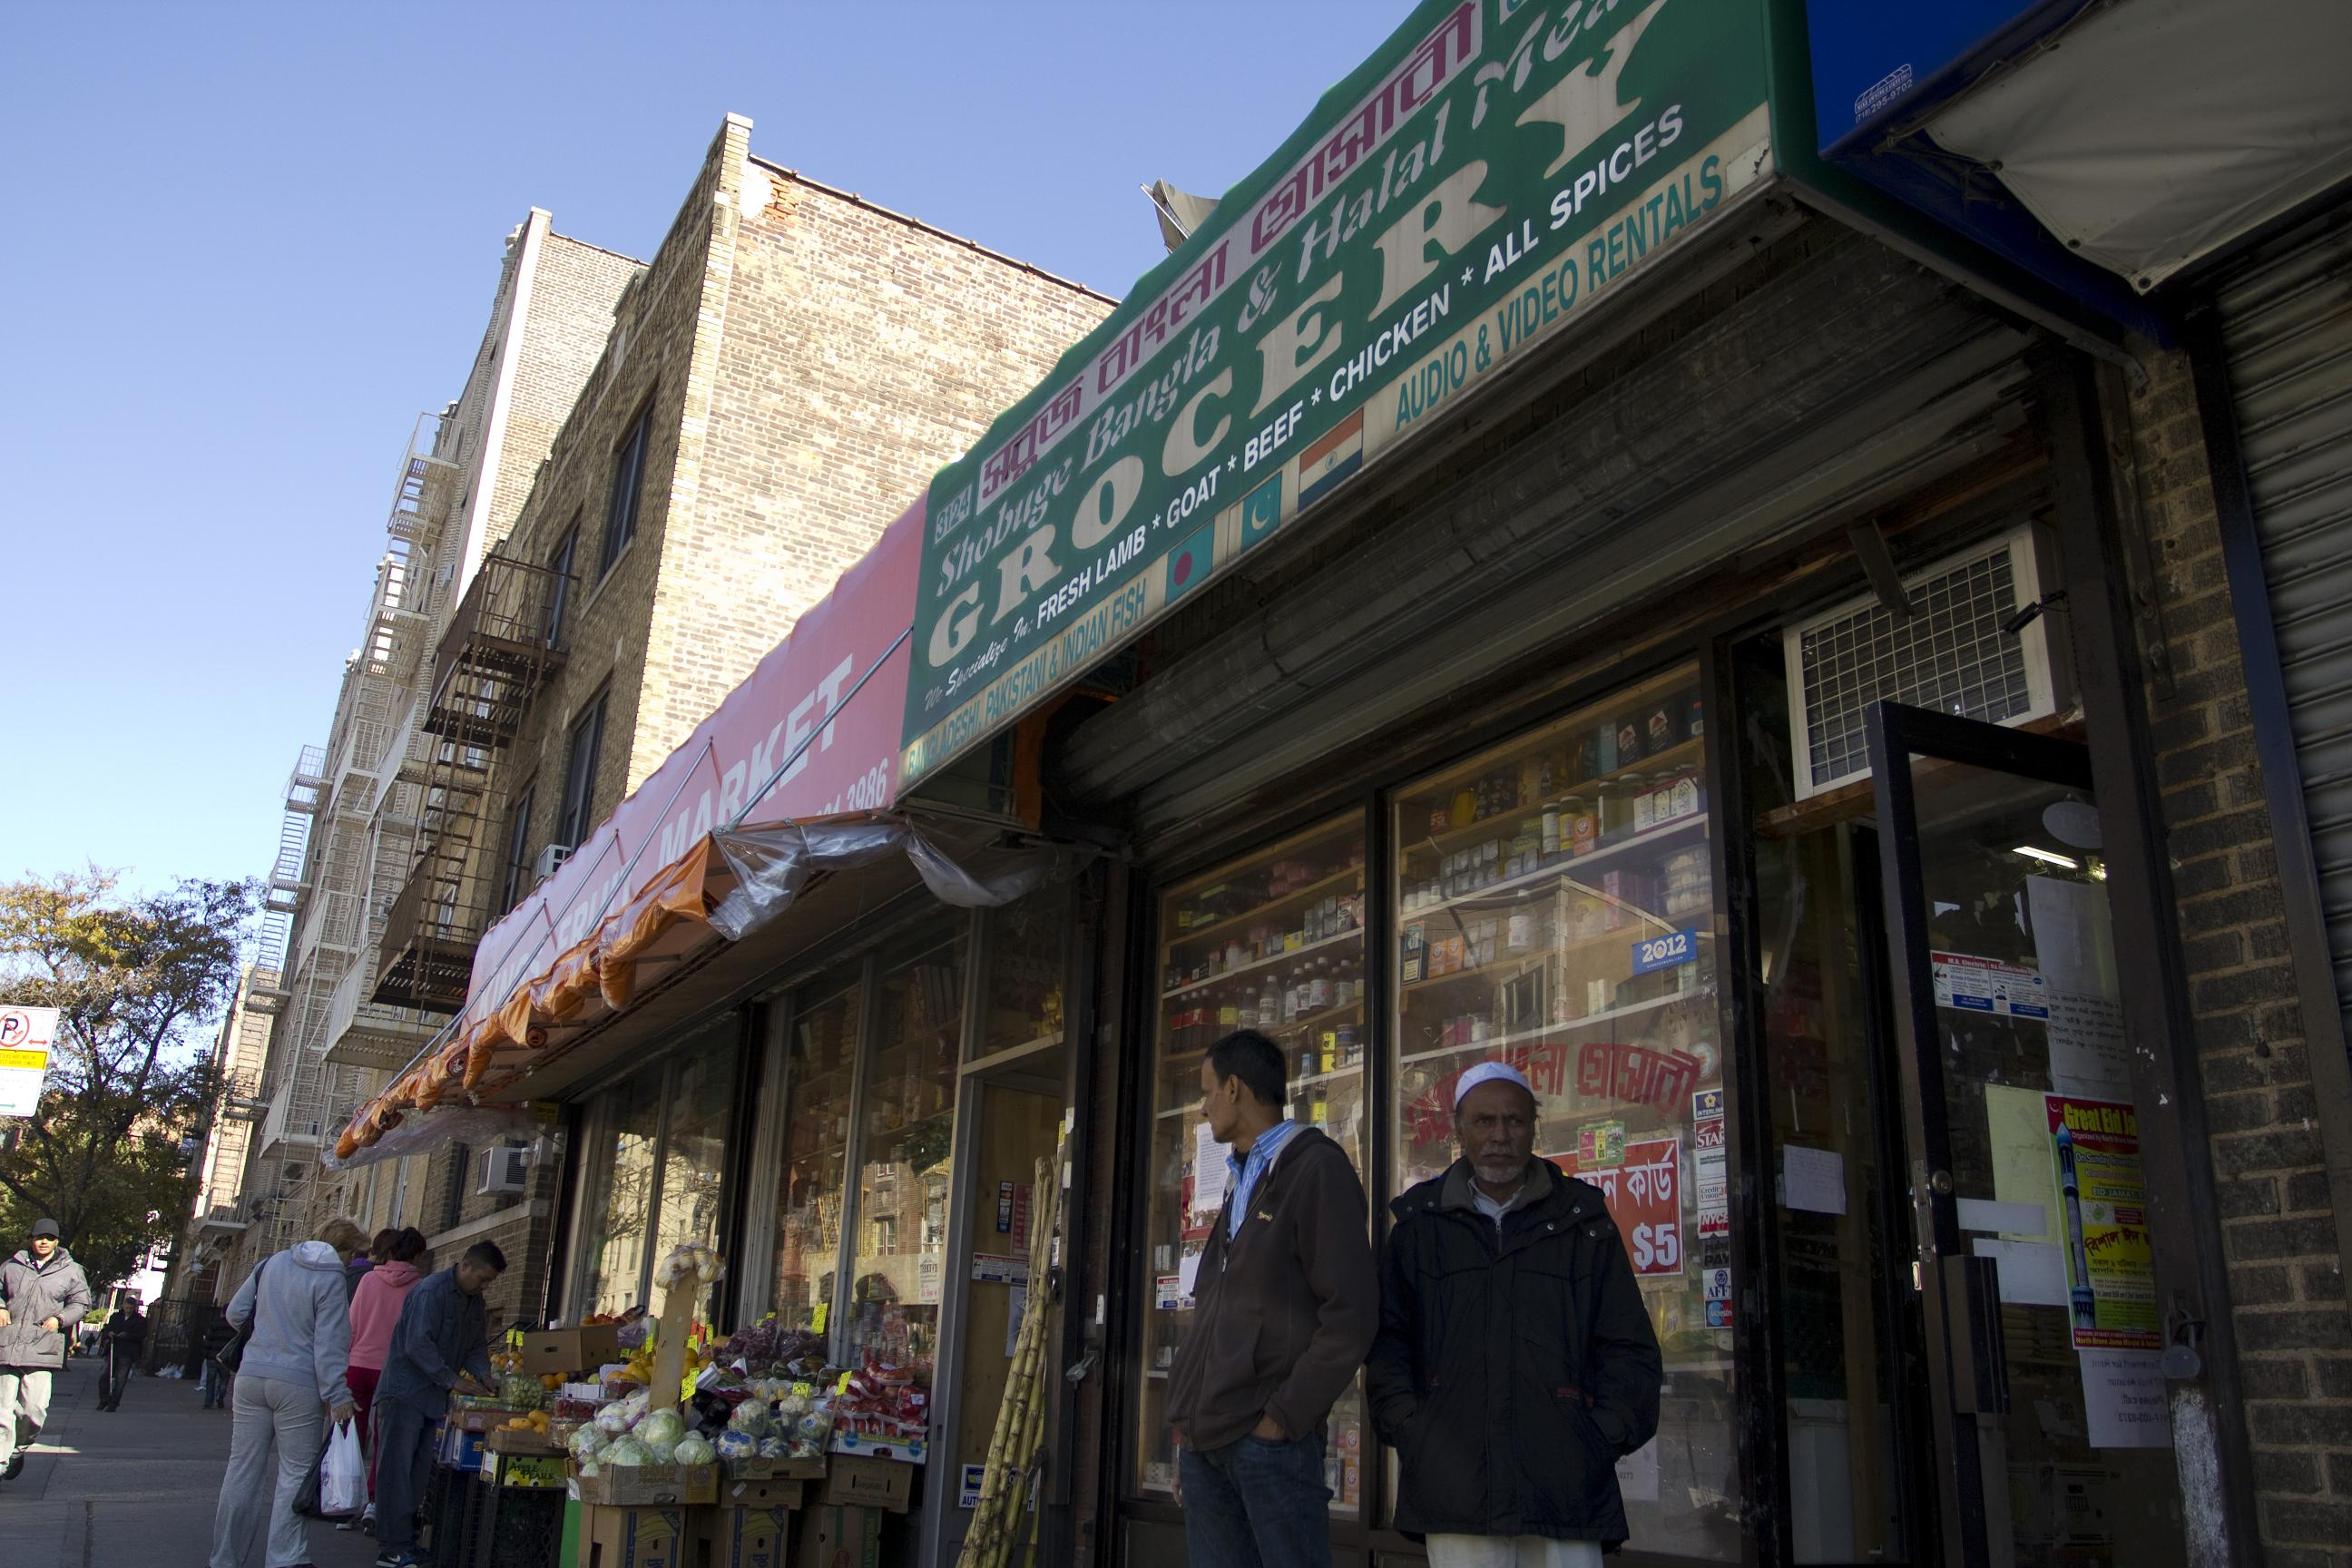 A Bangladeshi-owned bodega in Norwood.